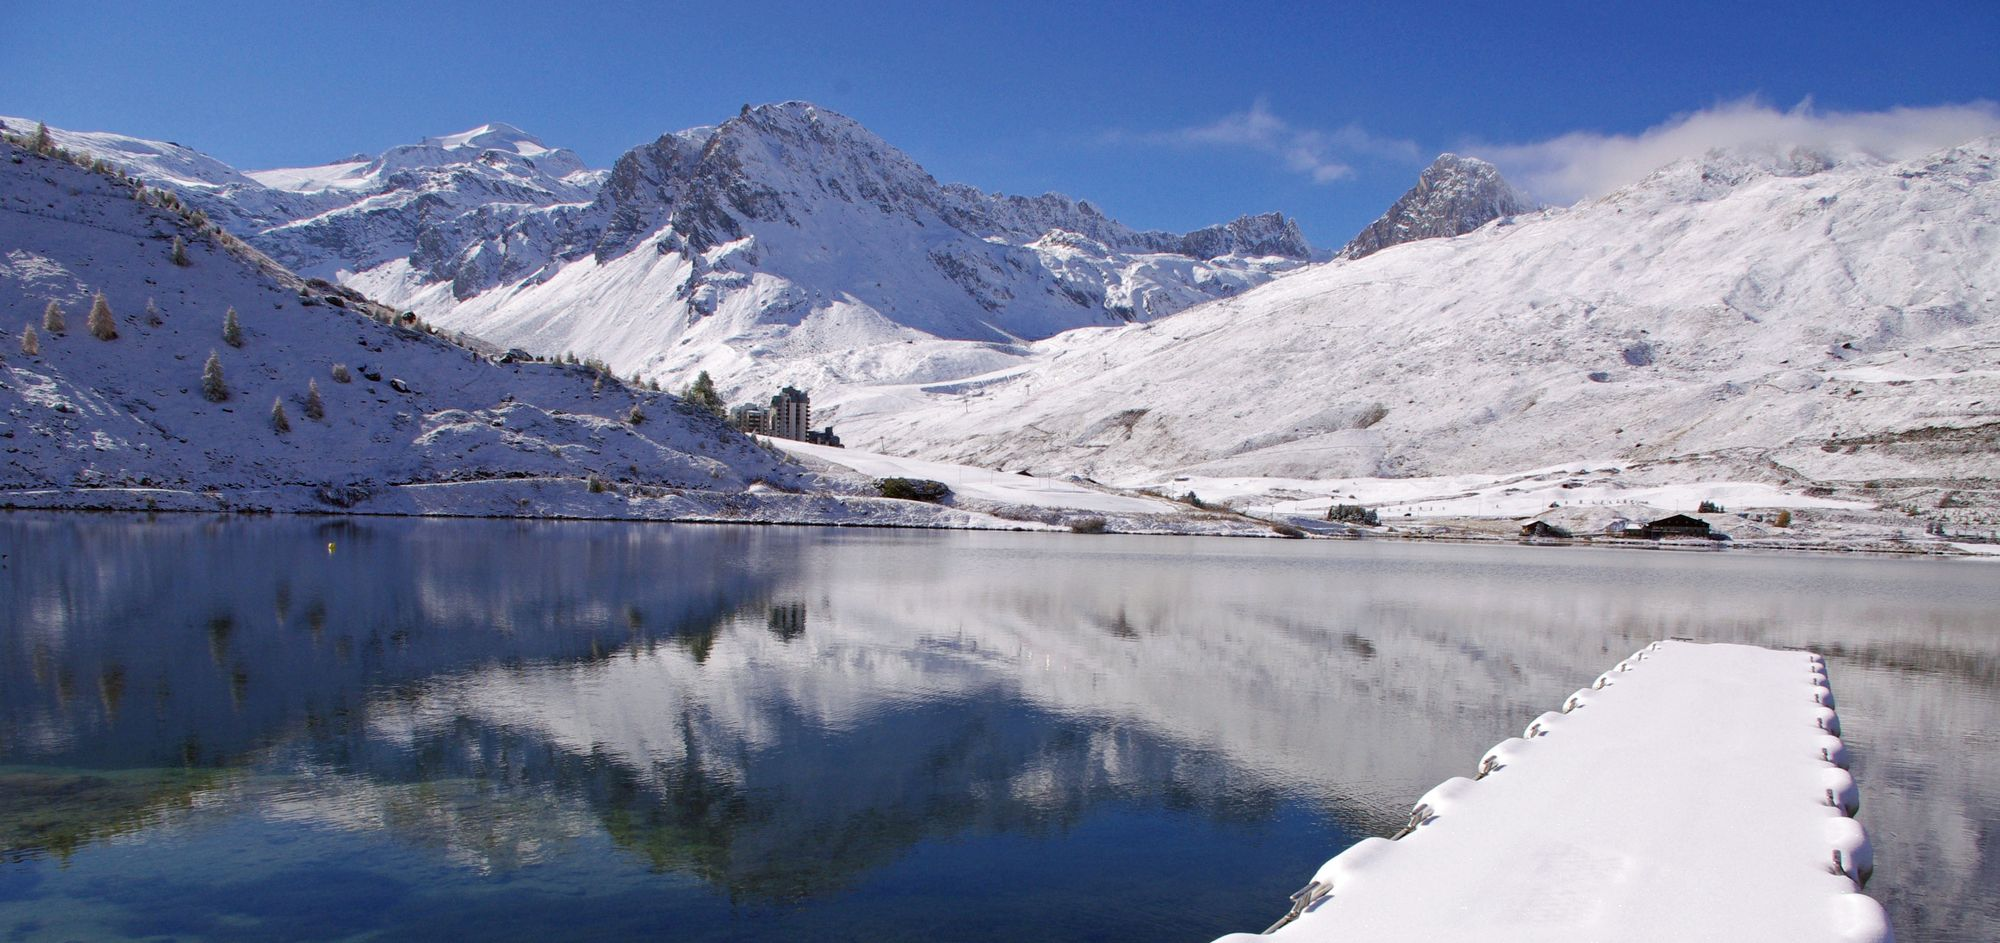 In Tignes, your window opens on the lake, the glacier